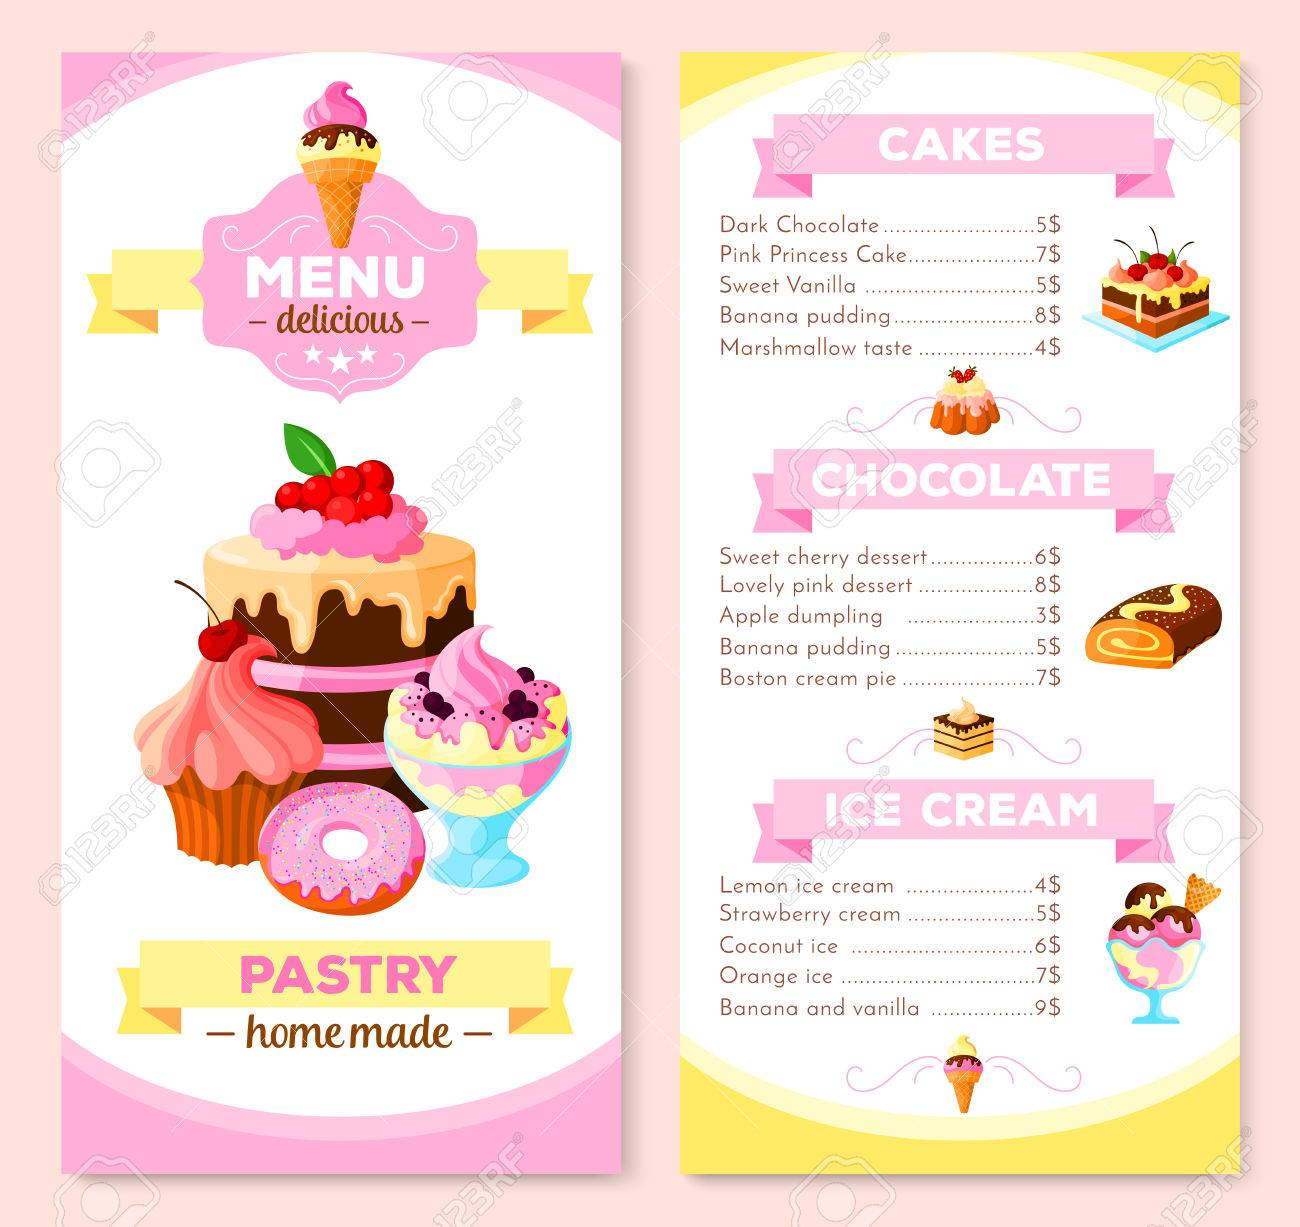 Vector Menu Template For Homemade Pastry Cakes Royalty Free ...